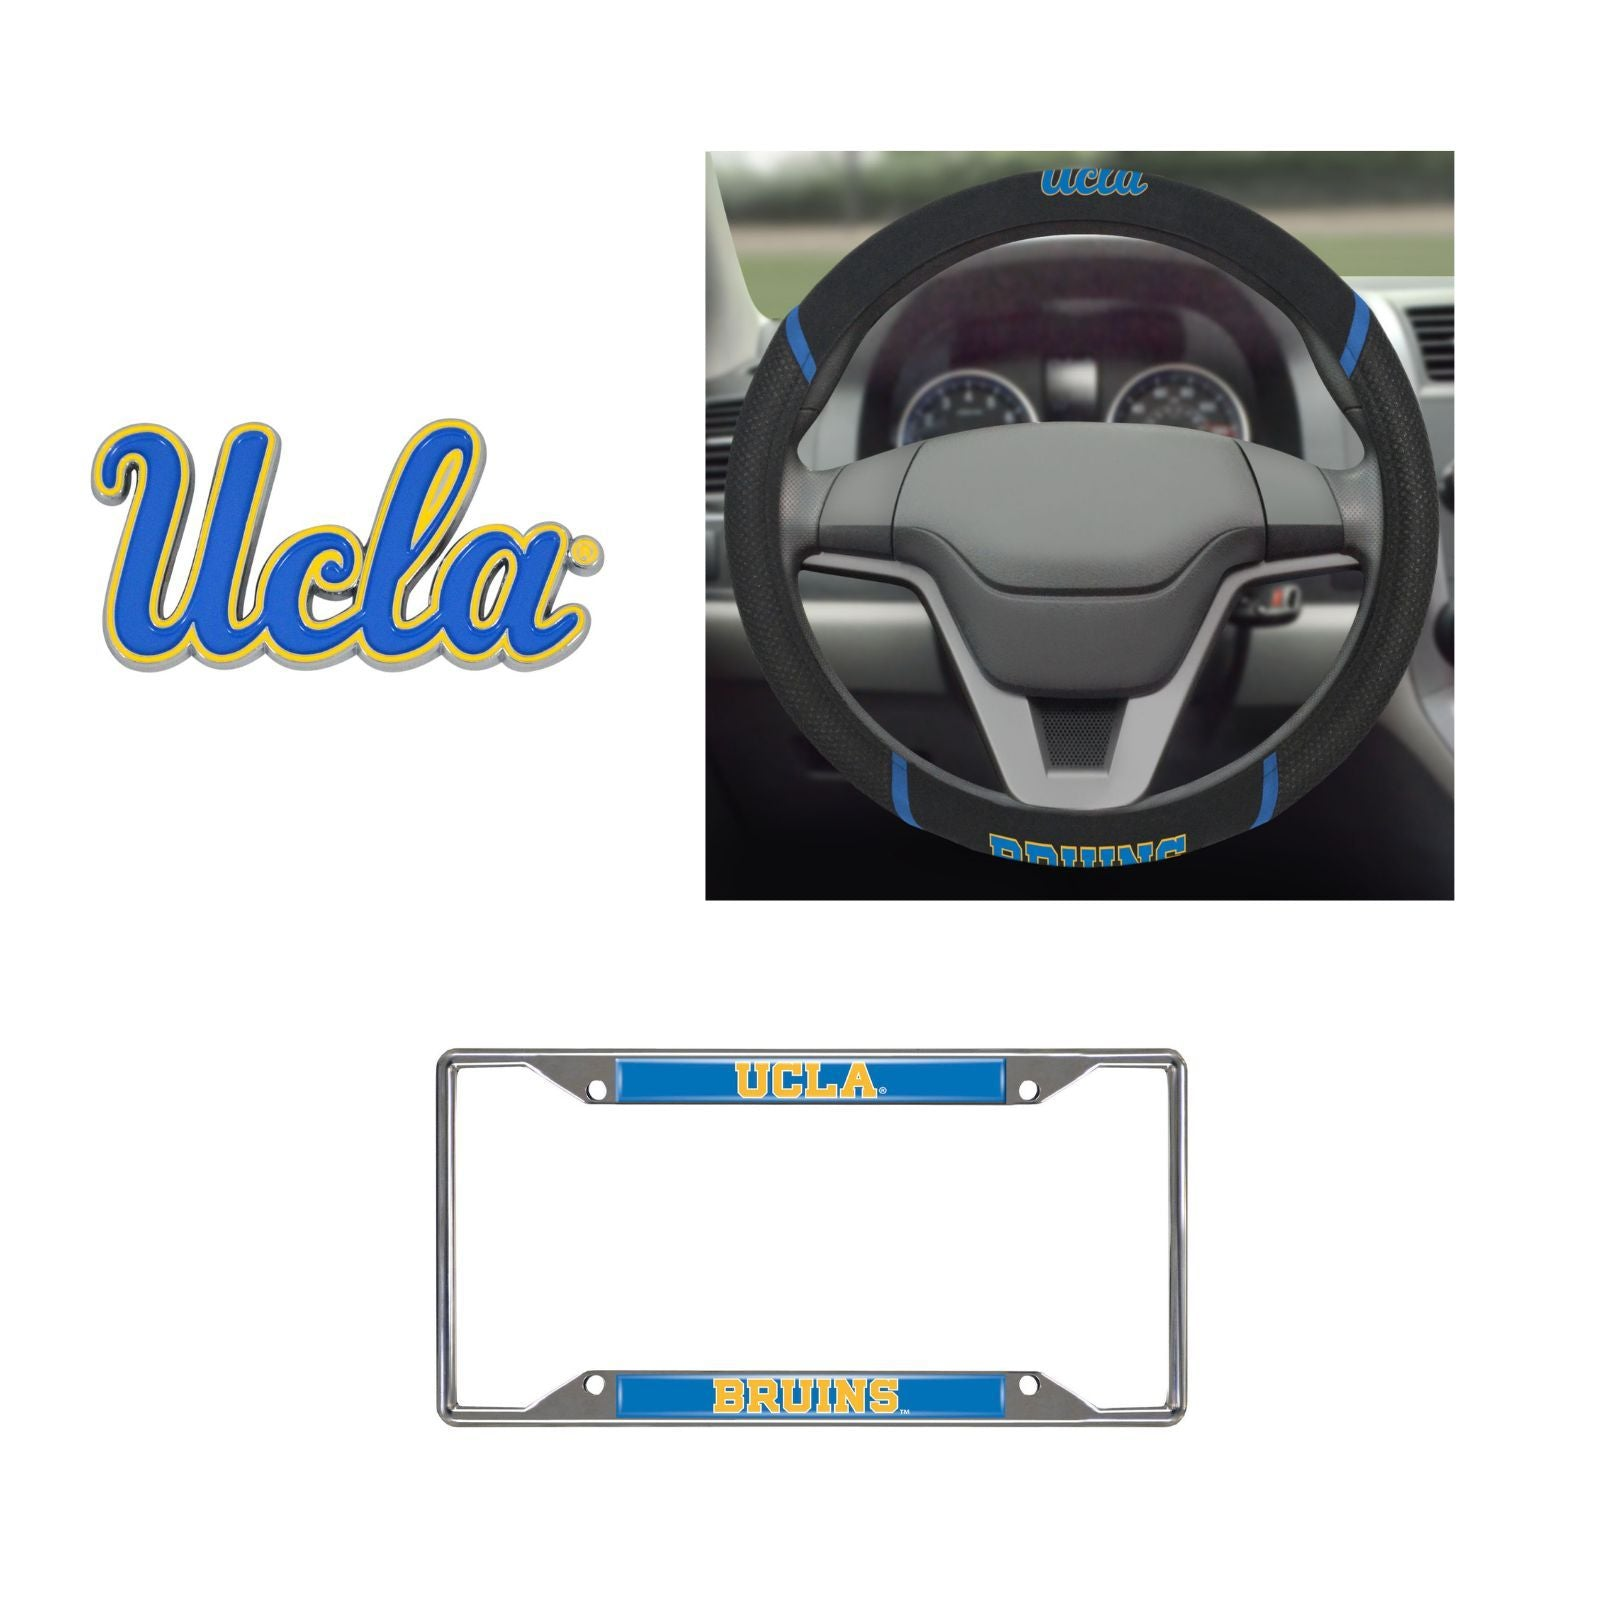 UCLA Bruins Steering Wheel Cover, License Plate Frame, 3D Color Emblem